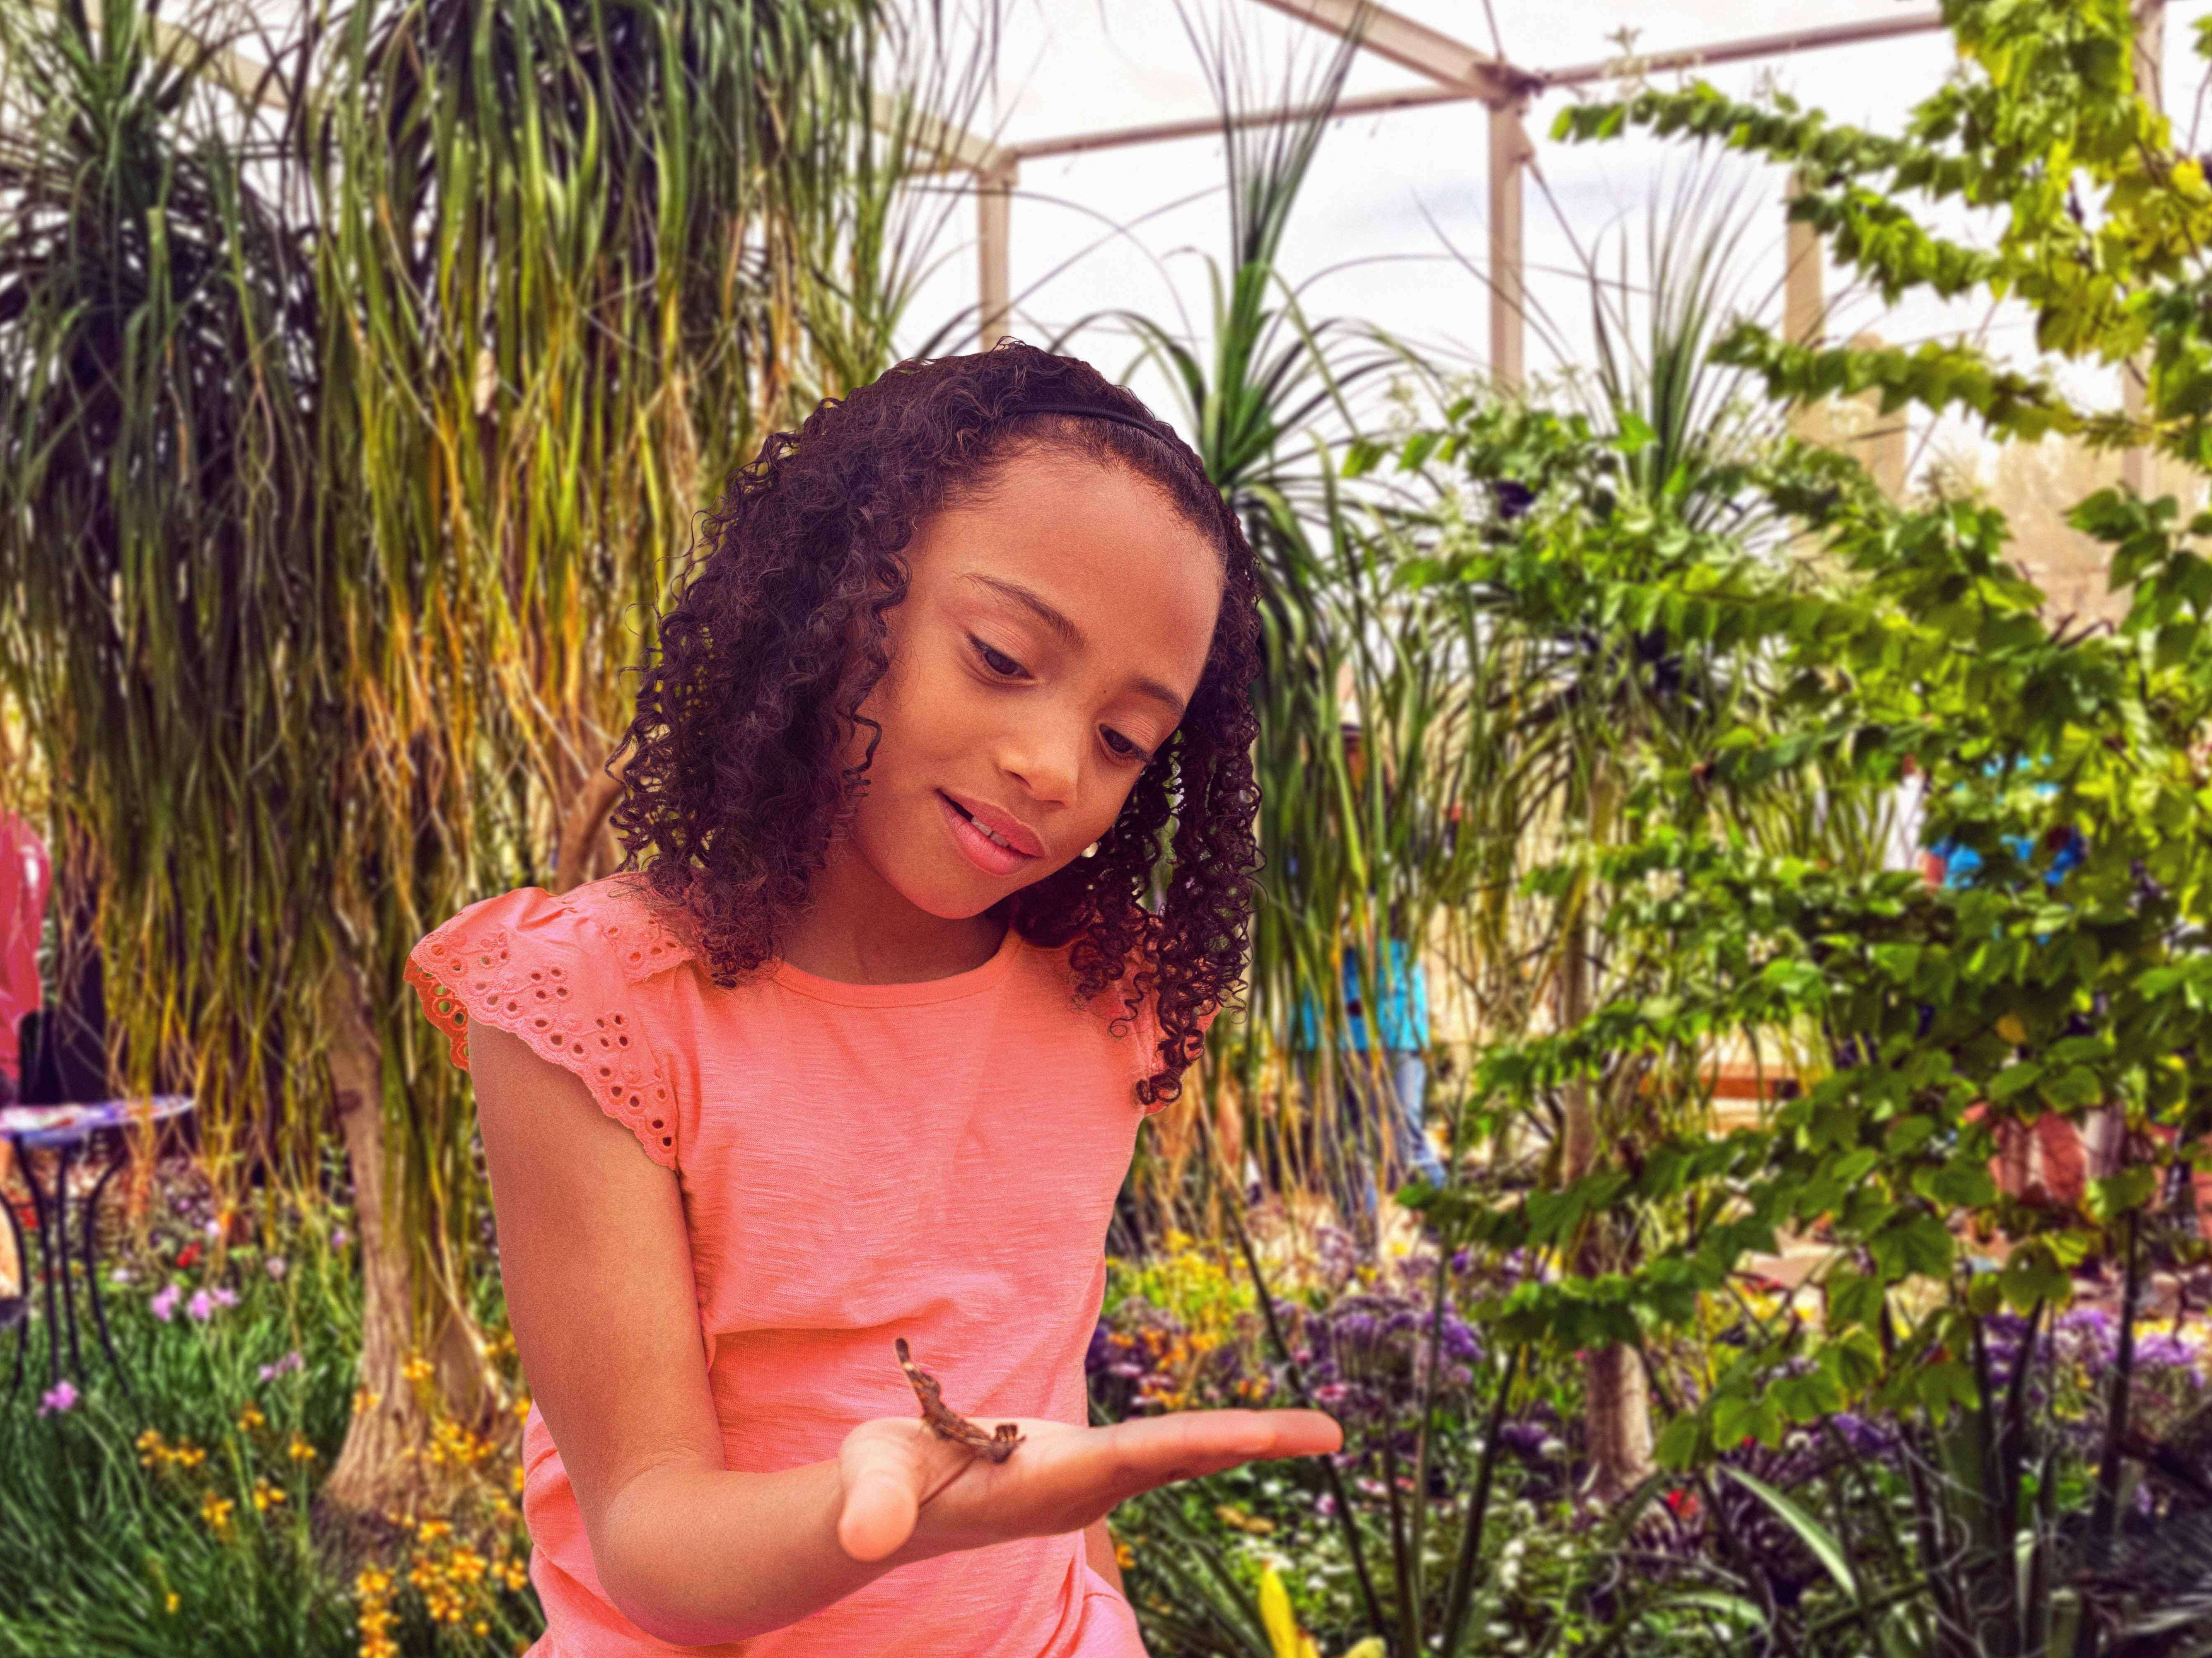 The Desert Botanical Garden's Fall Butterfly Exhibit educates the public on butterflies and offers an immersive experience.